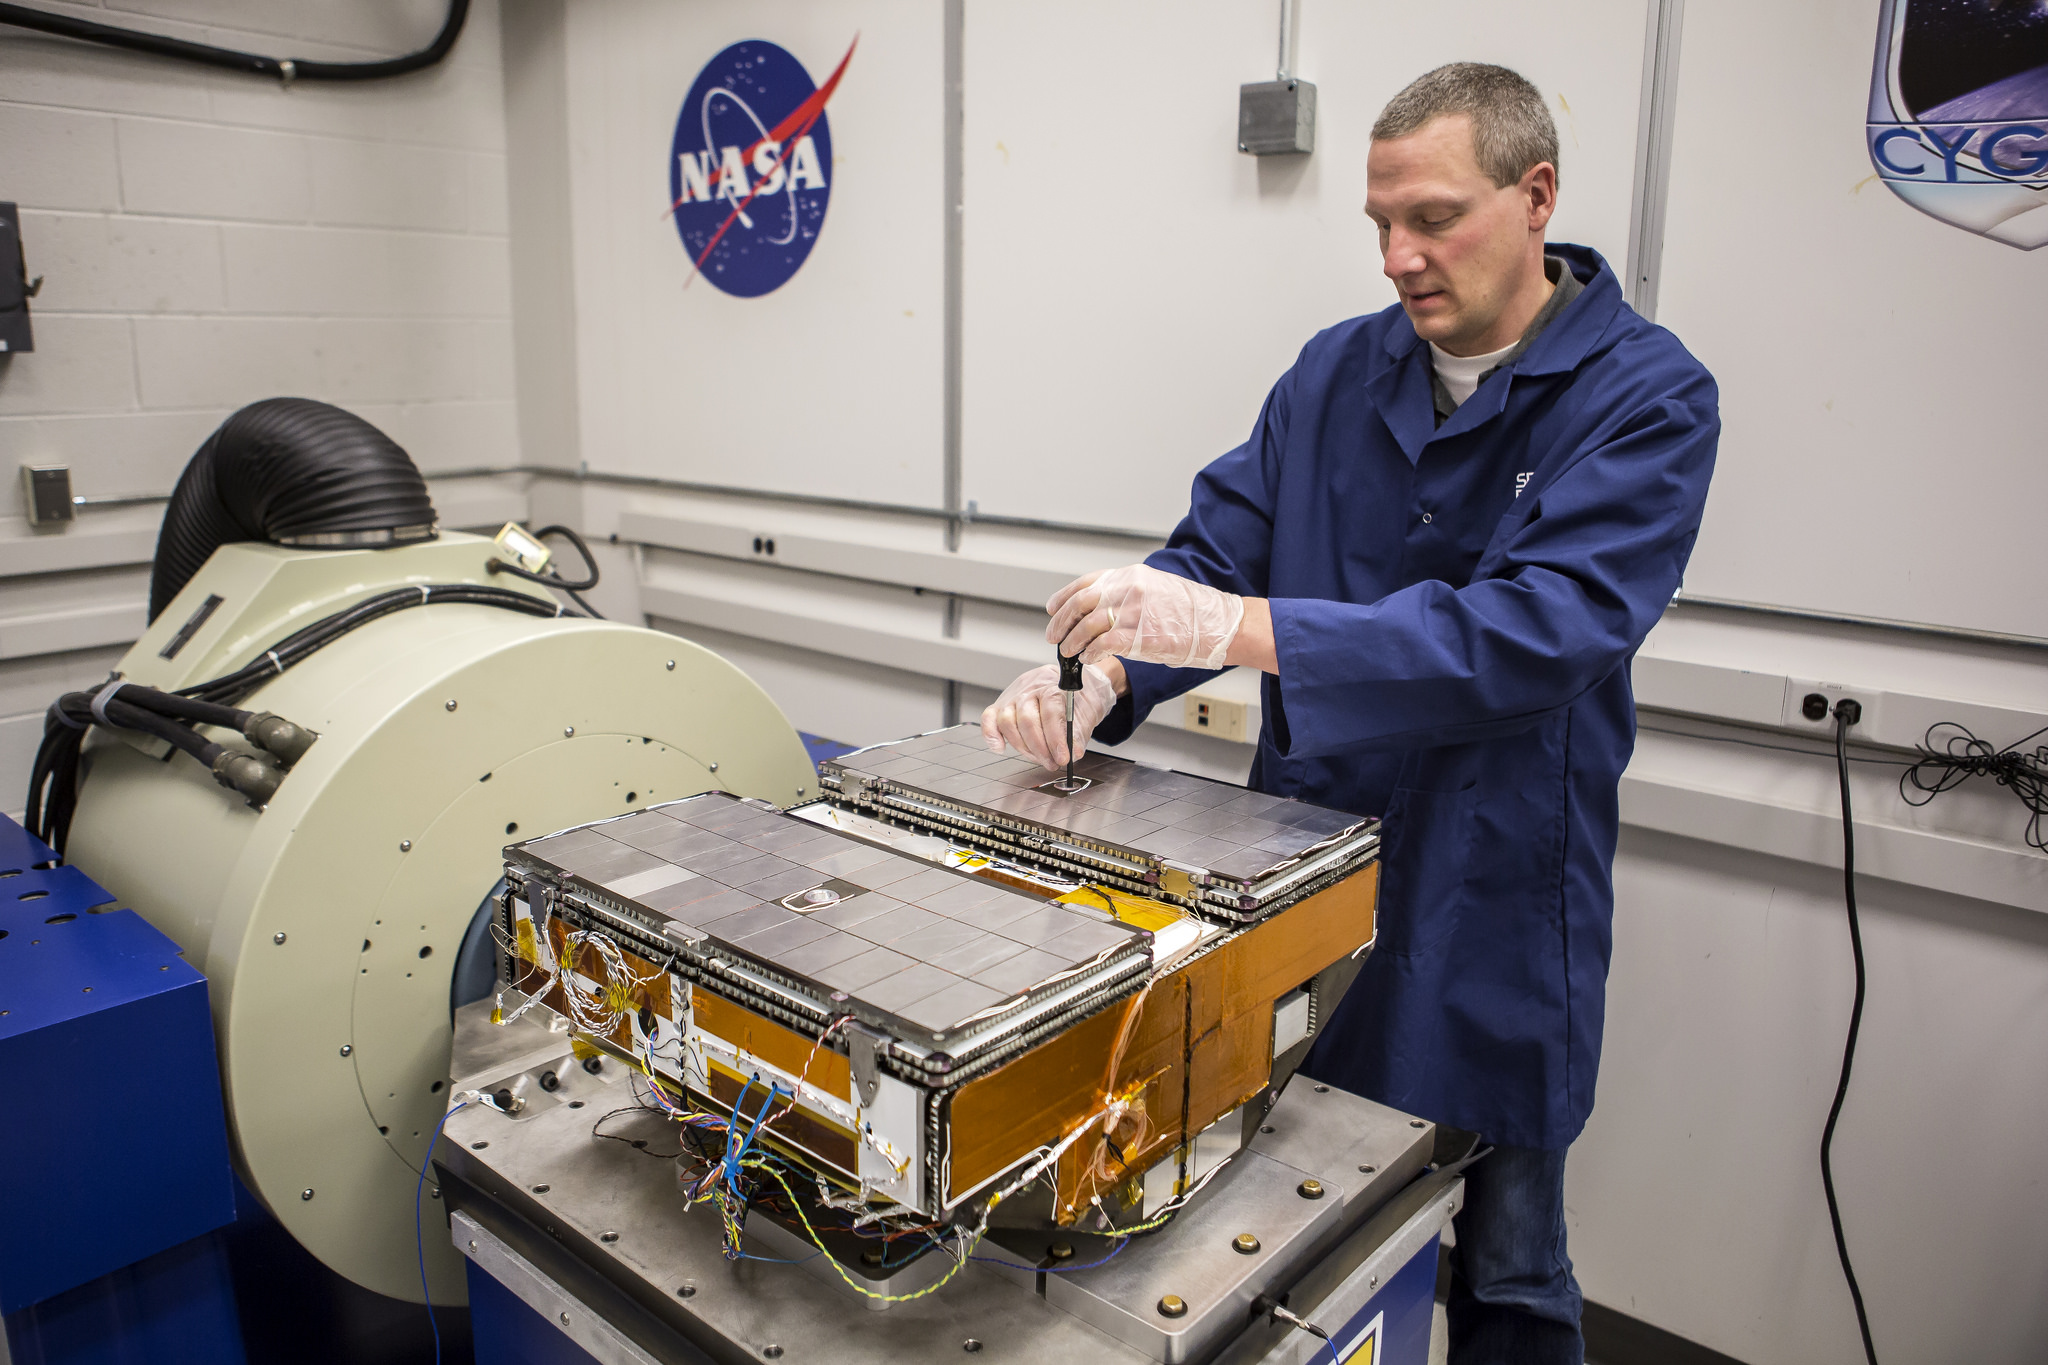 Jonathan Van Noord, research in the Department of Climate and Space Sciences and Engineering, calibrates a prototype of a CYGNSS microsatellite in the Space Research Building. Image credit: Joseph Xu, Michigan Engineering